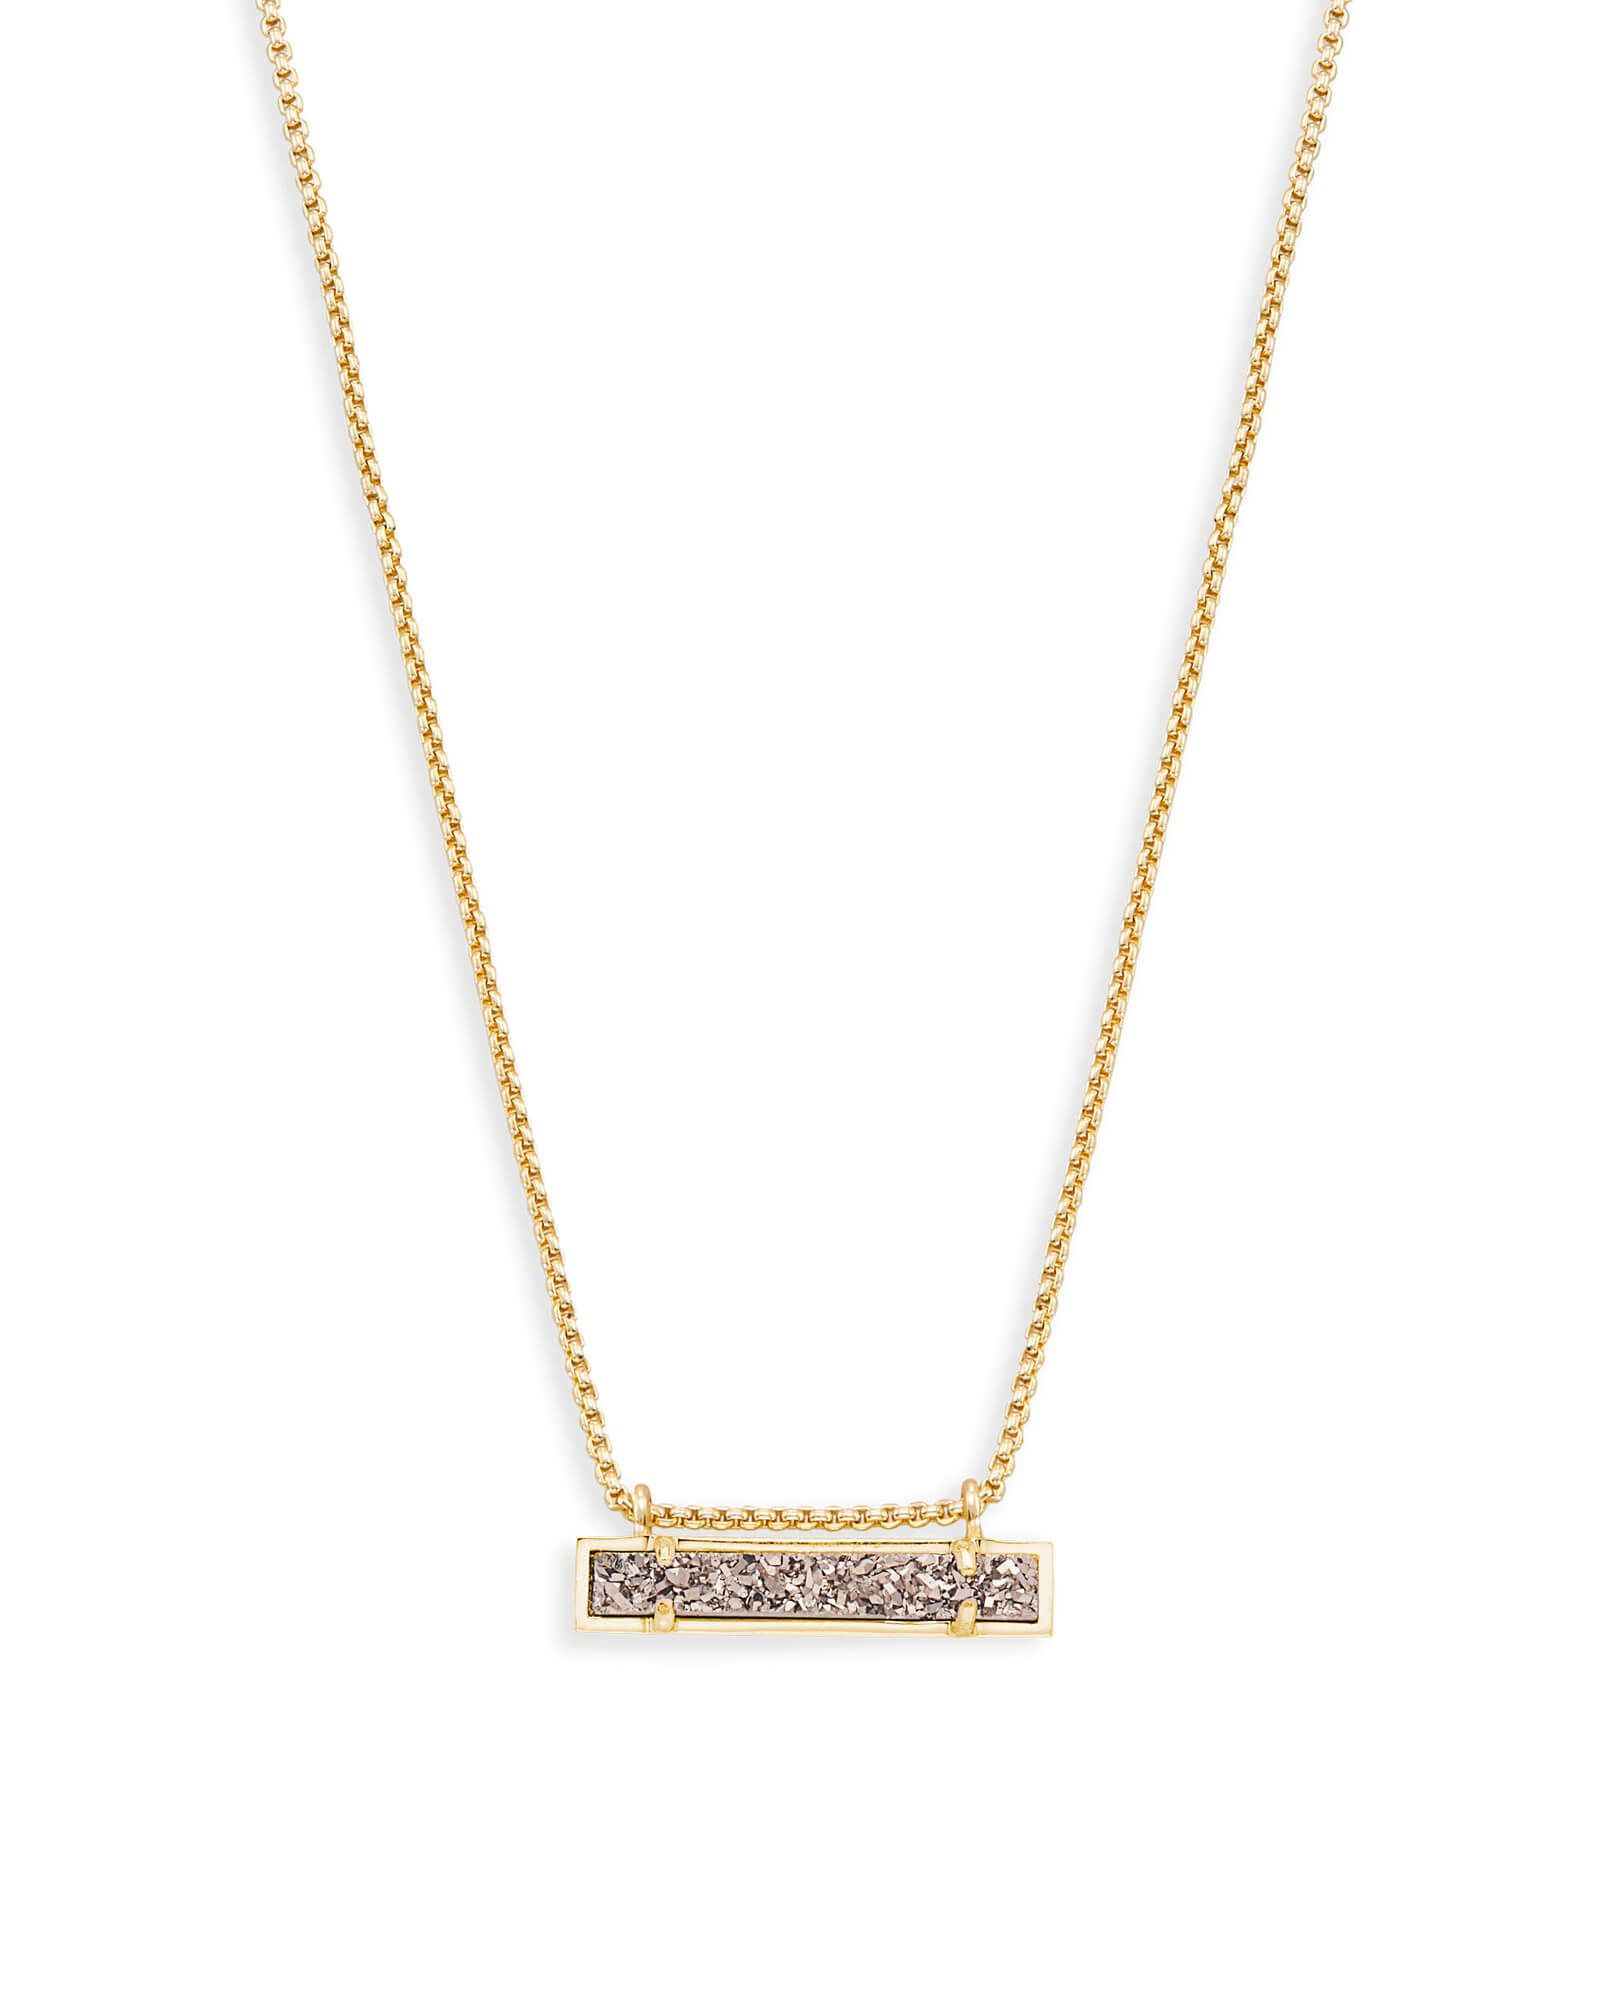 Shop gold bar pendant necklace at kendra scott with a dainty